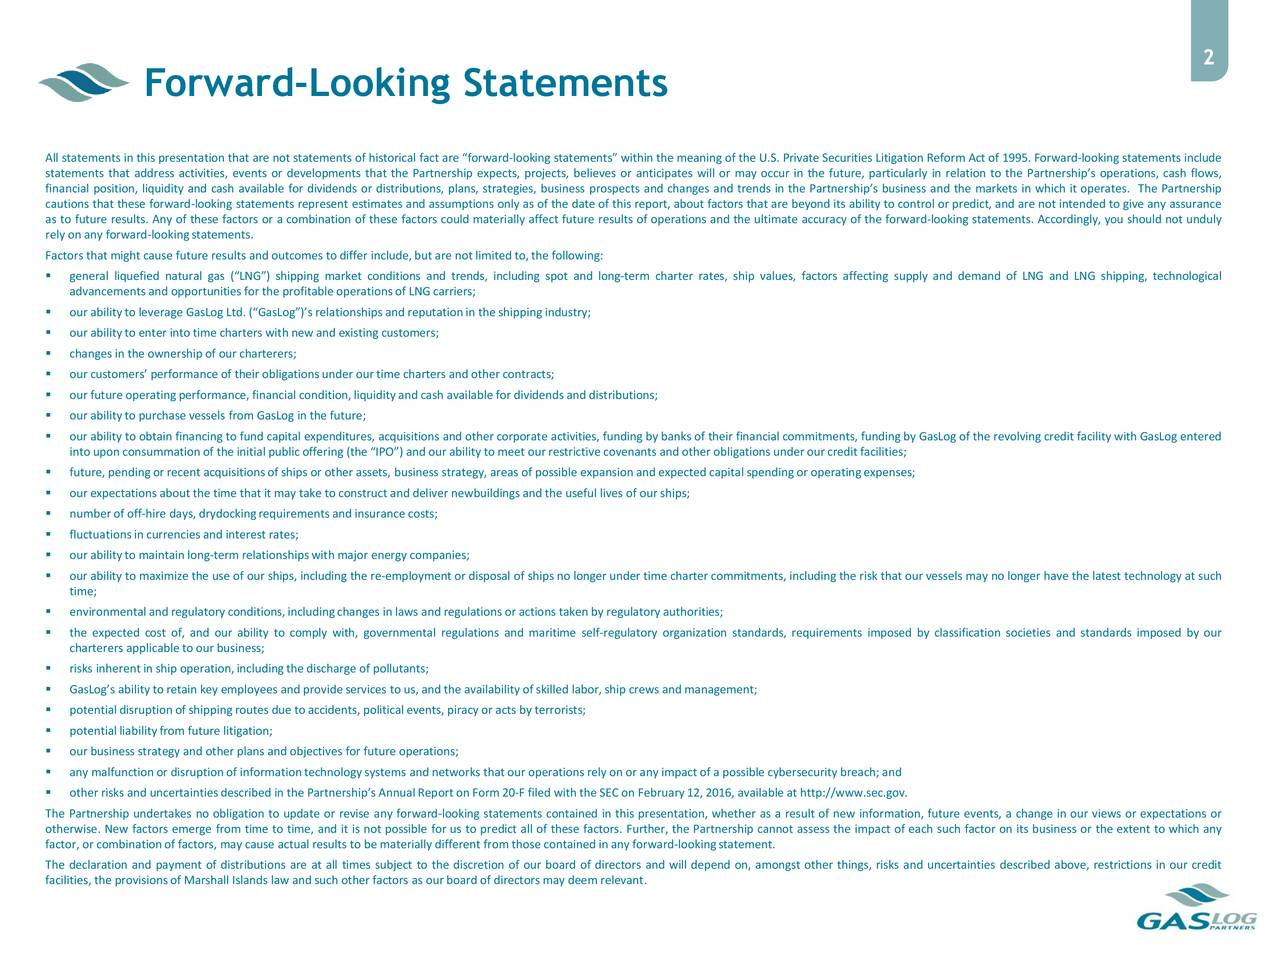 Forward-Looking Statements All statements in this presentation that are not statements of historical fact are forward-looking statements within the meaning of the U.S. Private Securities Litigation Reform Act of 1995. Forward-looking statements include statements that address activities, events or developments that the Partnership expects, projects, believes or anticipates will or may occur in the future, particularly in relation to the Partnerships operations, cash flows, financial position, liquidity and cash available for dividends or distributions, plans, strategies, business prospects and changes and trends in the Partnerships business and the markets in which it operates. The Partnership cautions that these forward-looking statements represent estimates and assumptions only as of the date of this report, about factors that are beyond its ability to control or predict, and are not intended to give any assurance as to future results. Any of these factors or a combination of these factors could materially affect future results of operations and the ultimate accuracy of the forward-looking statements. Accordingly, you should not unduly rely on any forward-lookingstatements. Factors that might cause future results and outcomes to differ include,but are not limited to, the following: general liquefied natural gas (LNG) shipping market conditions and trends, including spot and long-term charter rates, ship values, factors affecting supply and demand of LNG and LNG shipping, technological advancements and opportunities for the profitableoperationsof LNG carriers; our abilityto leverage GasLog Ltd. (GasLog)s relationshipsand reputationin the shippingindustry; our abilityto enter intotime charters with new and existing customers; changes in the ownershipof our charterers; our customers performance of their obligationsunder our time charters and other contracts; our future operatingperformance, financial condition,liquidityand cash available for dividendsand distribution